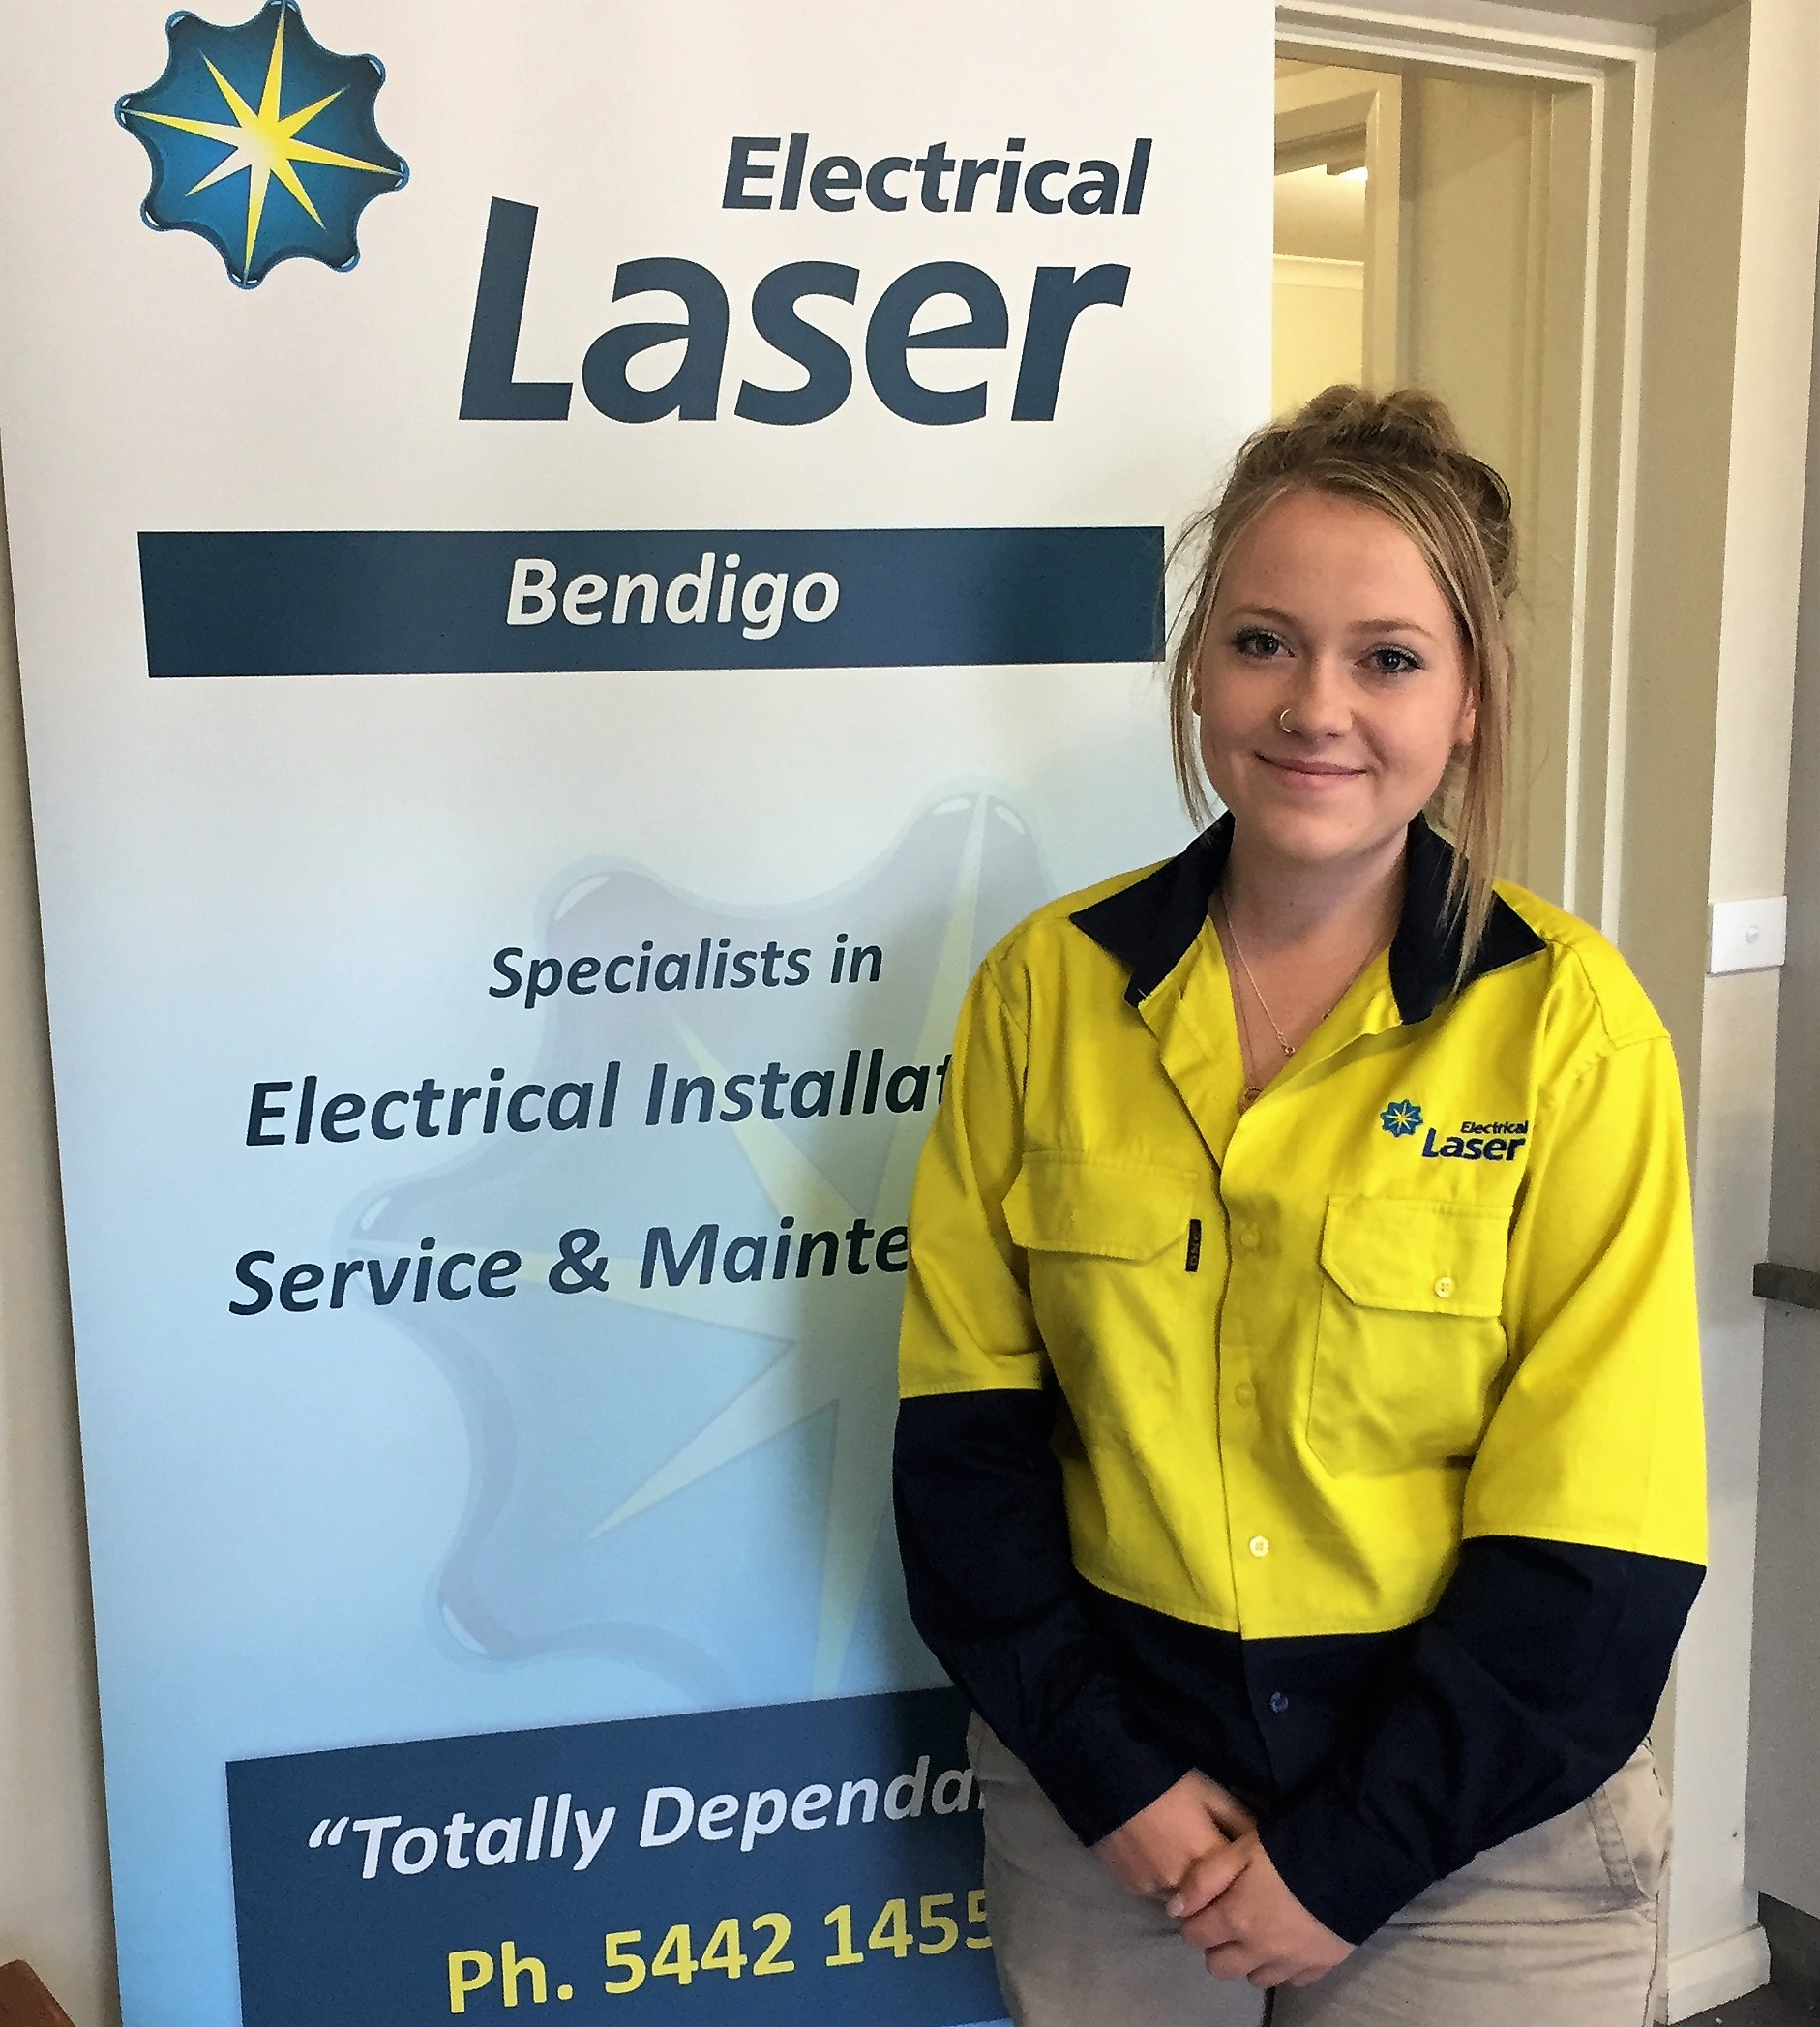 Laser tradies being bold for change